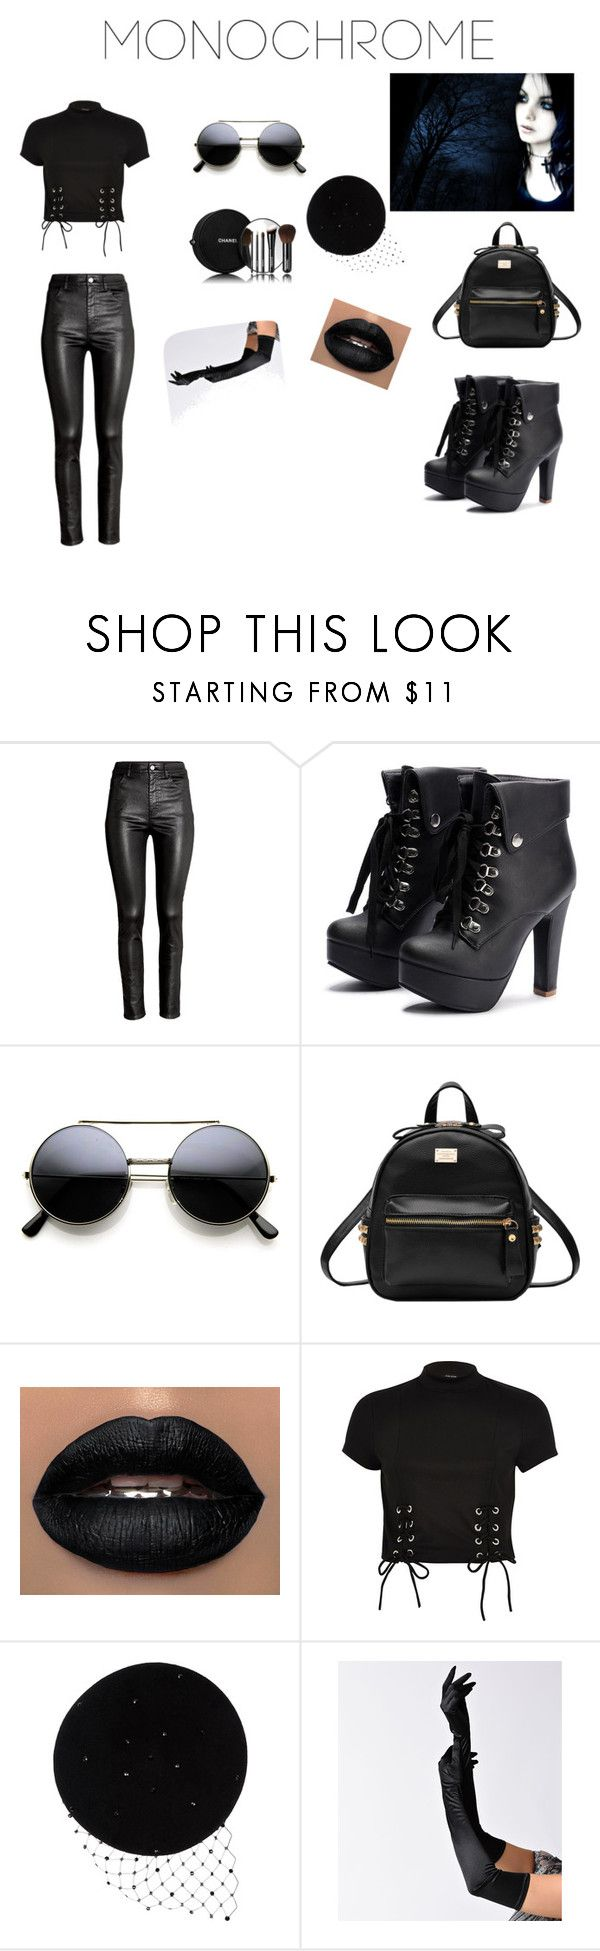 """gotik"" by amra-memic ❤ liked on Polyvore featuring H&M, Chanel, River Island and Victoria Grant"